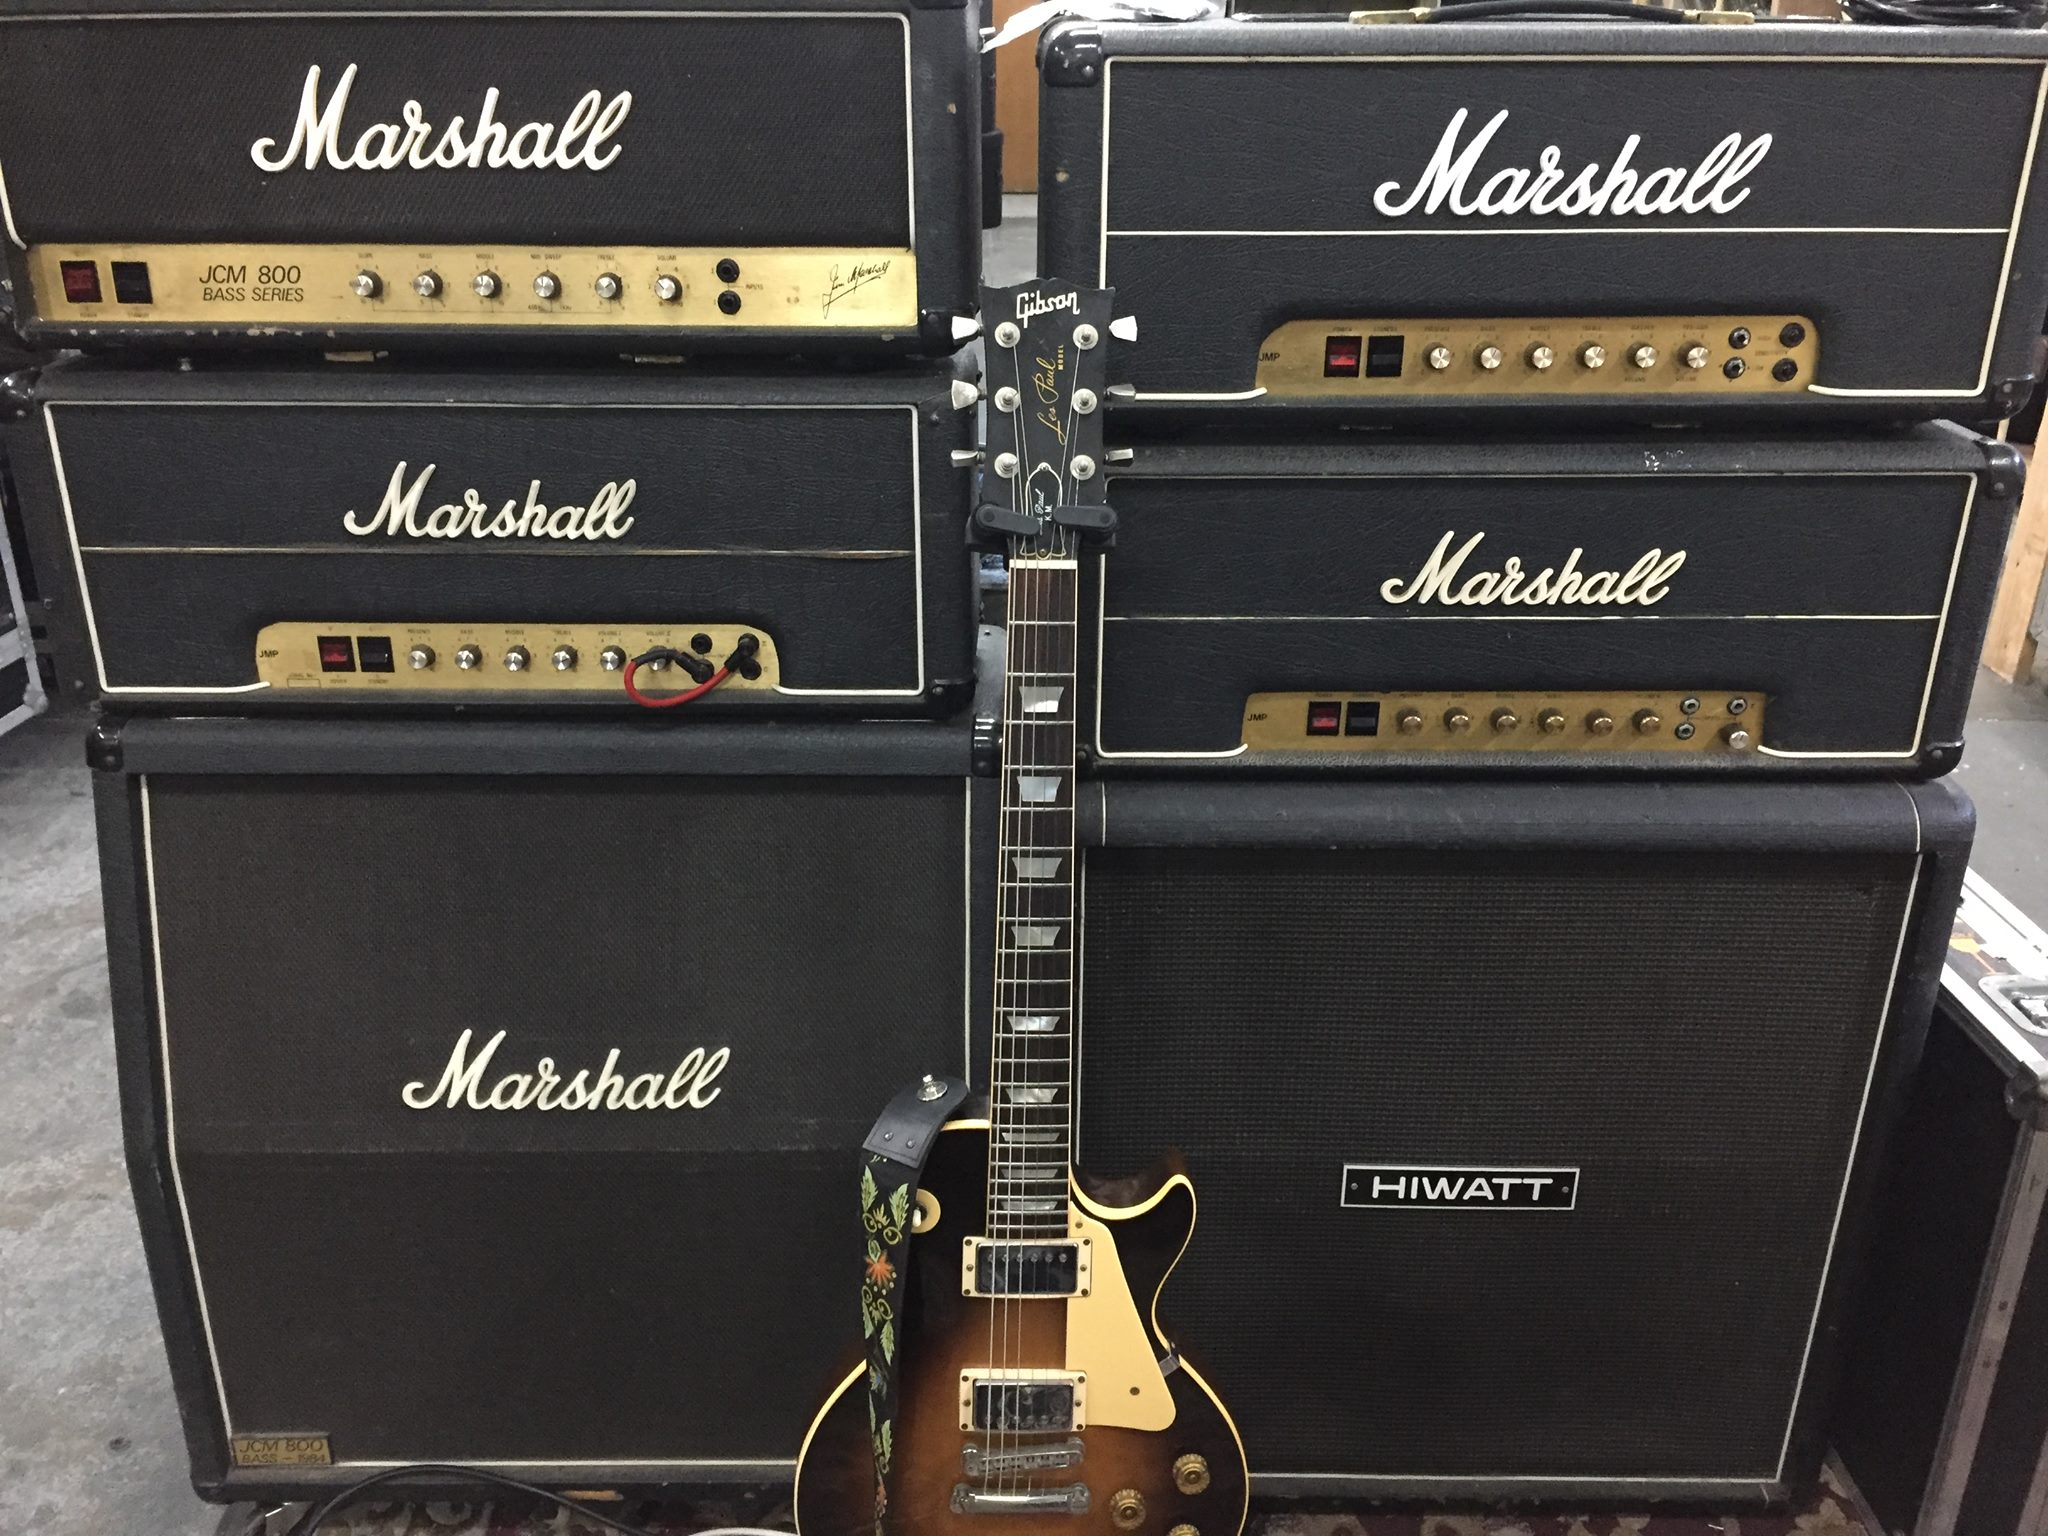 Marshall stacks